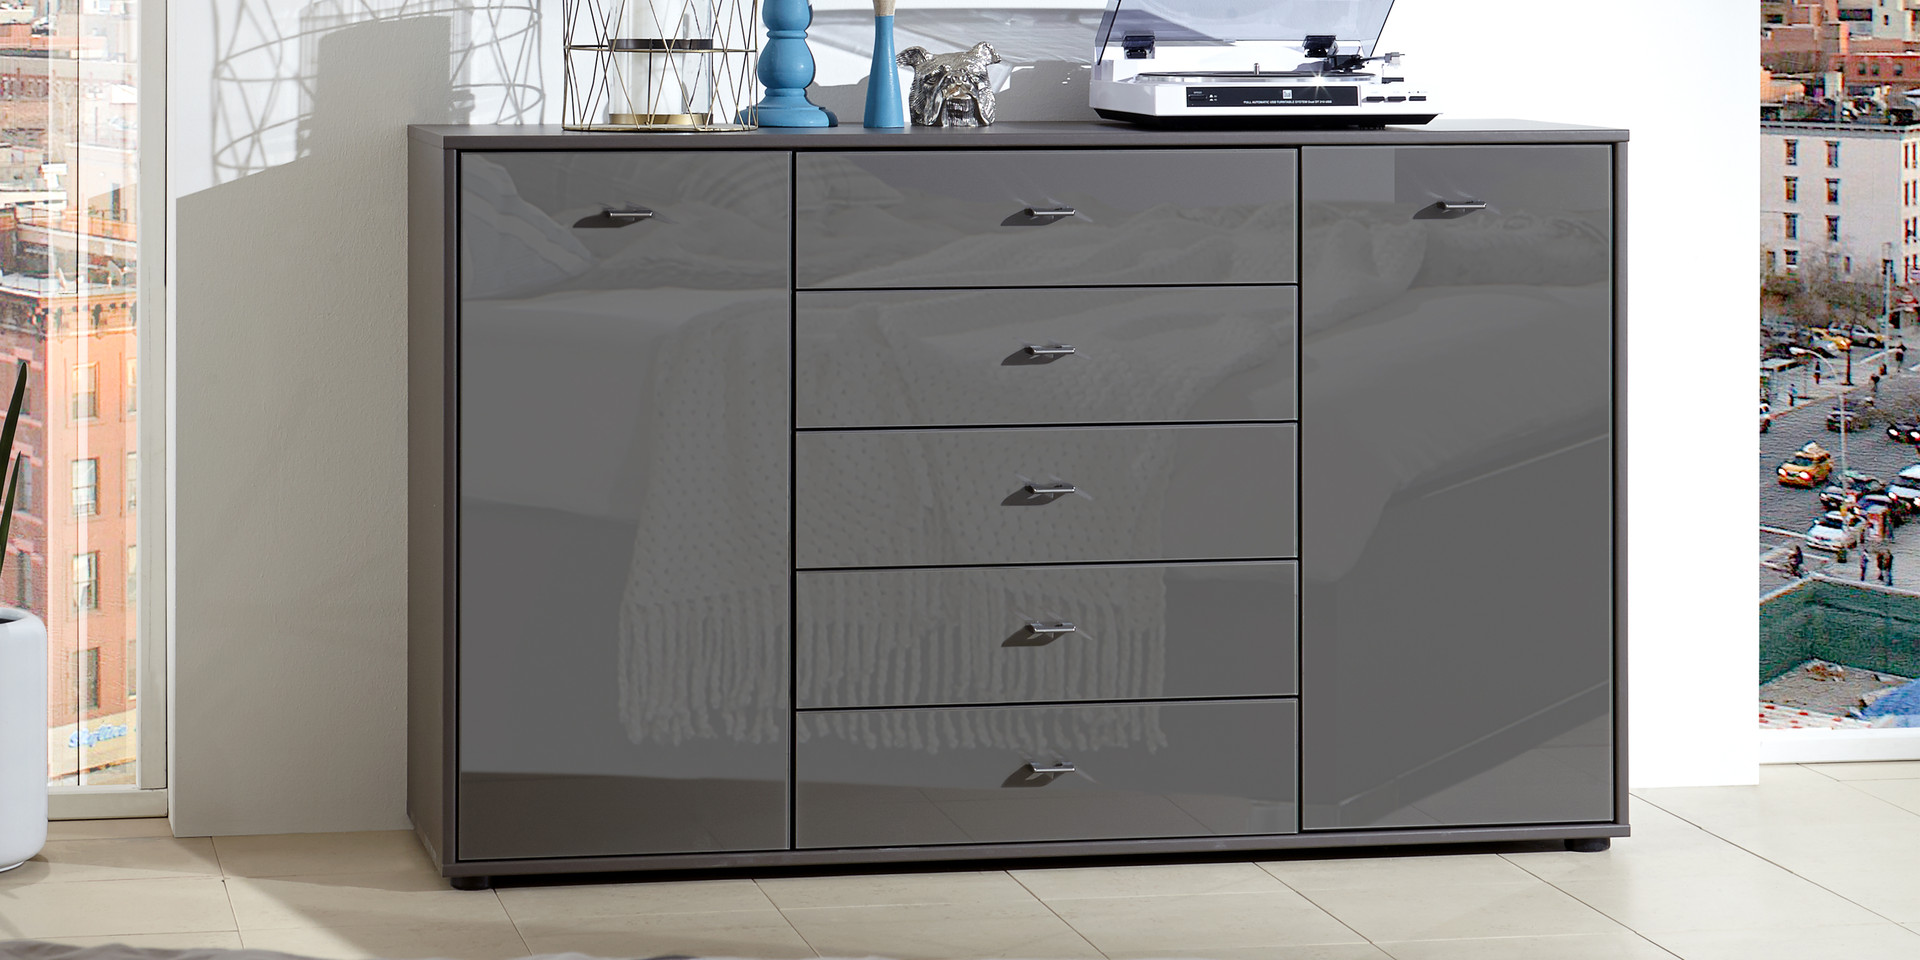 unsere kompakte kommode tokio m belhersteller wiemann. Black Bedroom Furniture Sets. Home Design Ideas